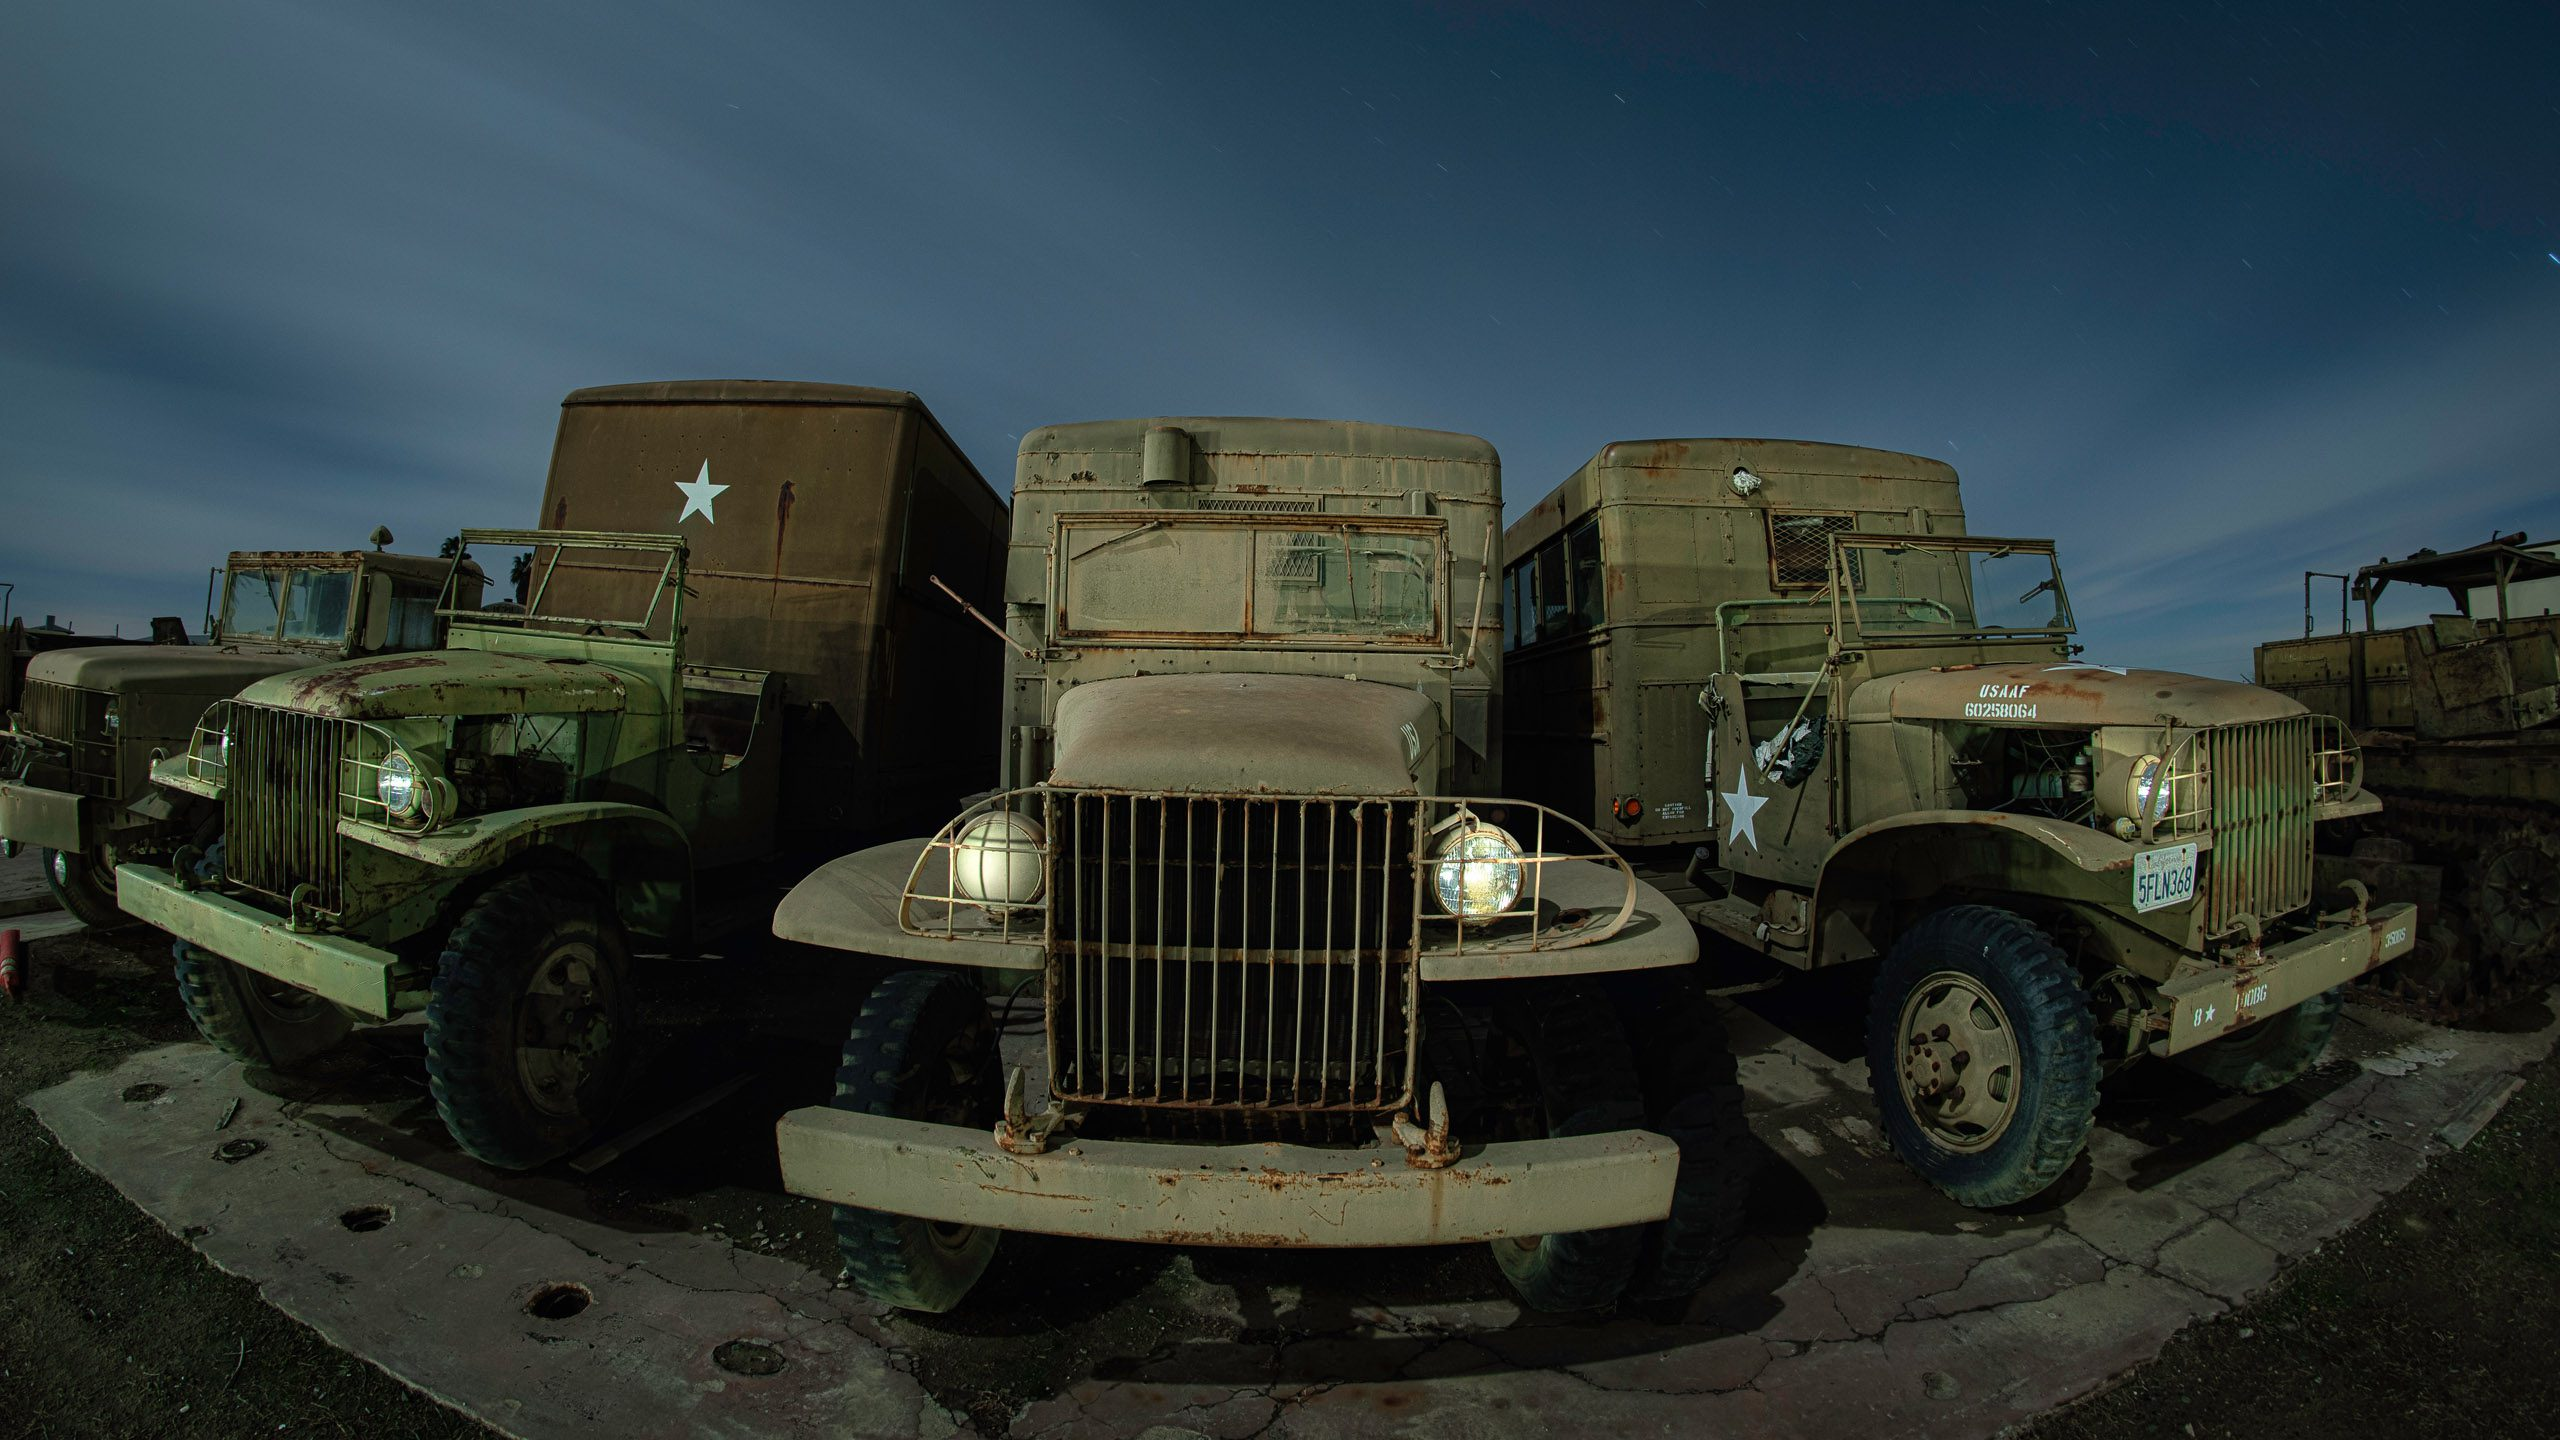 7516_kenlee_eaglefield_201226_1936_3mf8iso200_fisheye_three-military-trucks HEADER PHOTOFOCUS